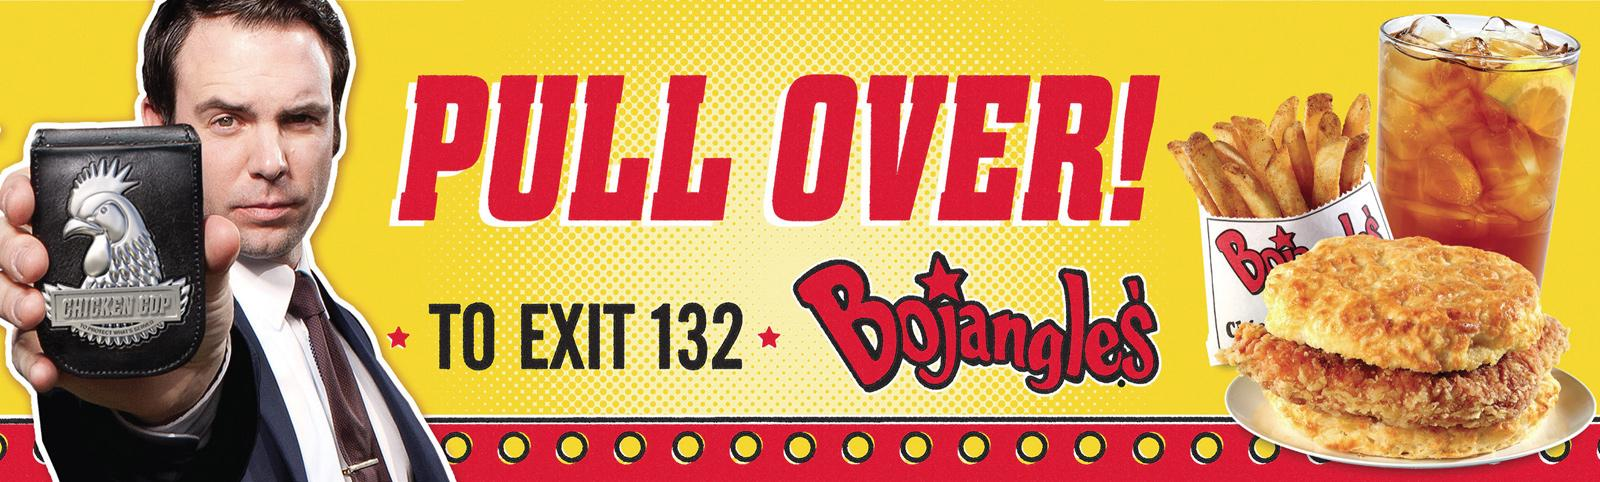 Bojangles' Outdoor Ad -  Pull over